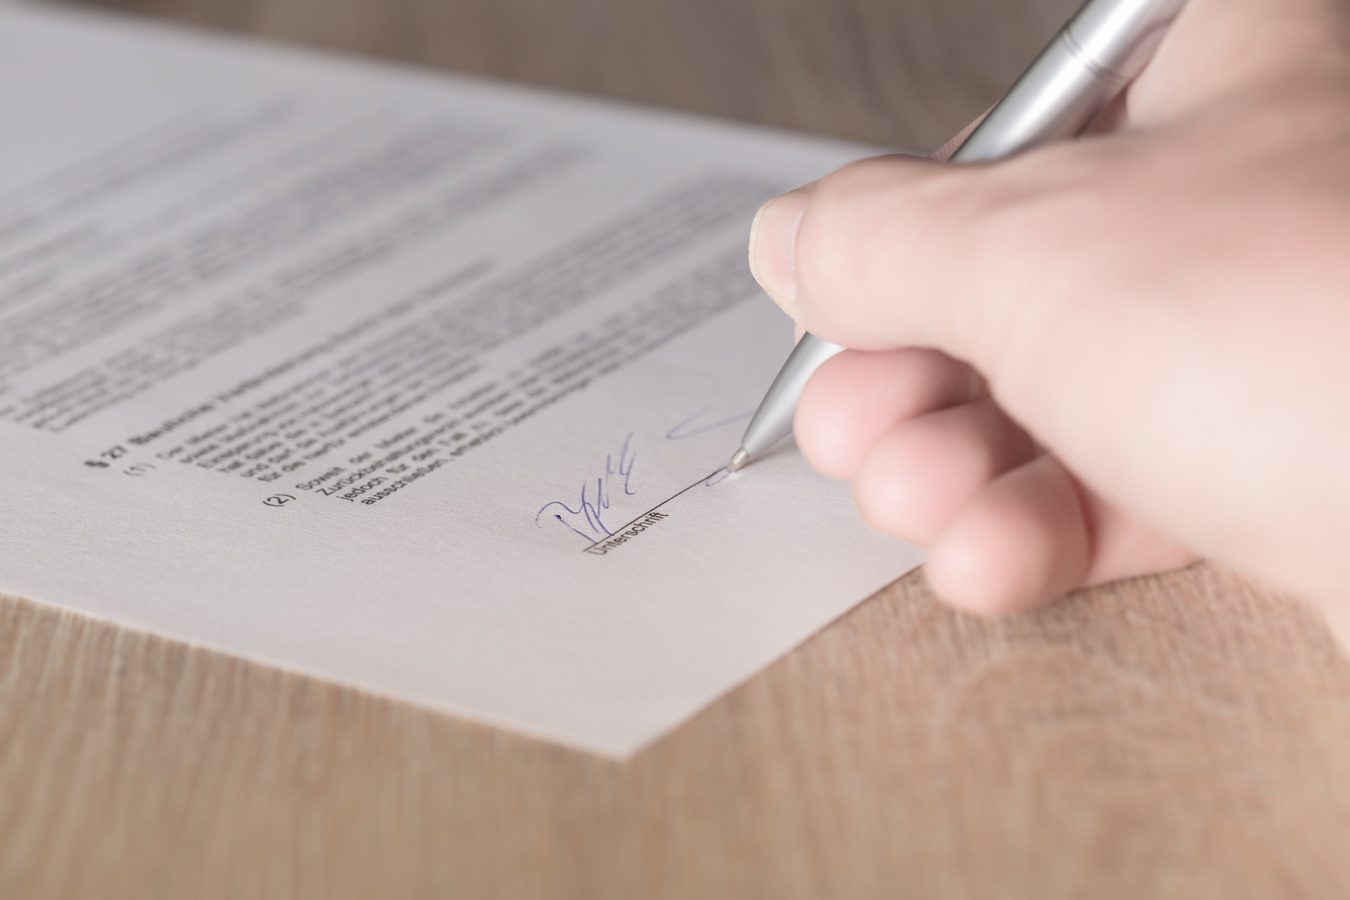 Make sure your tenant rental agreements protect your landlord rights for a safe and agreeable relationships